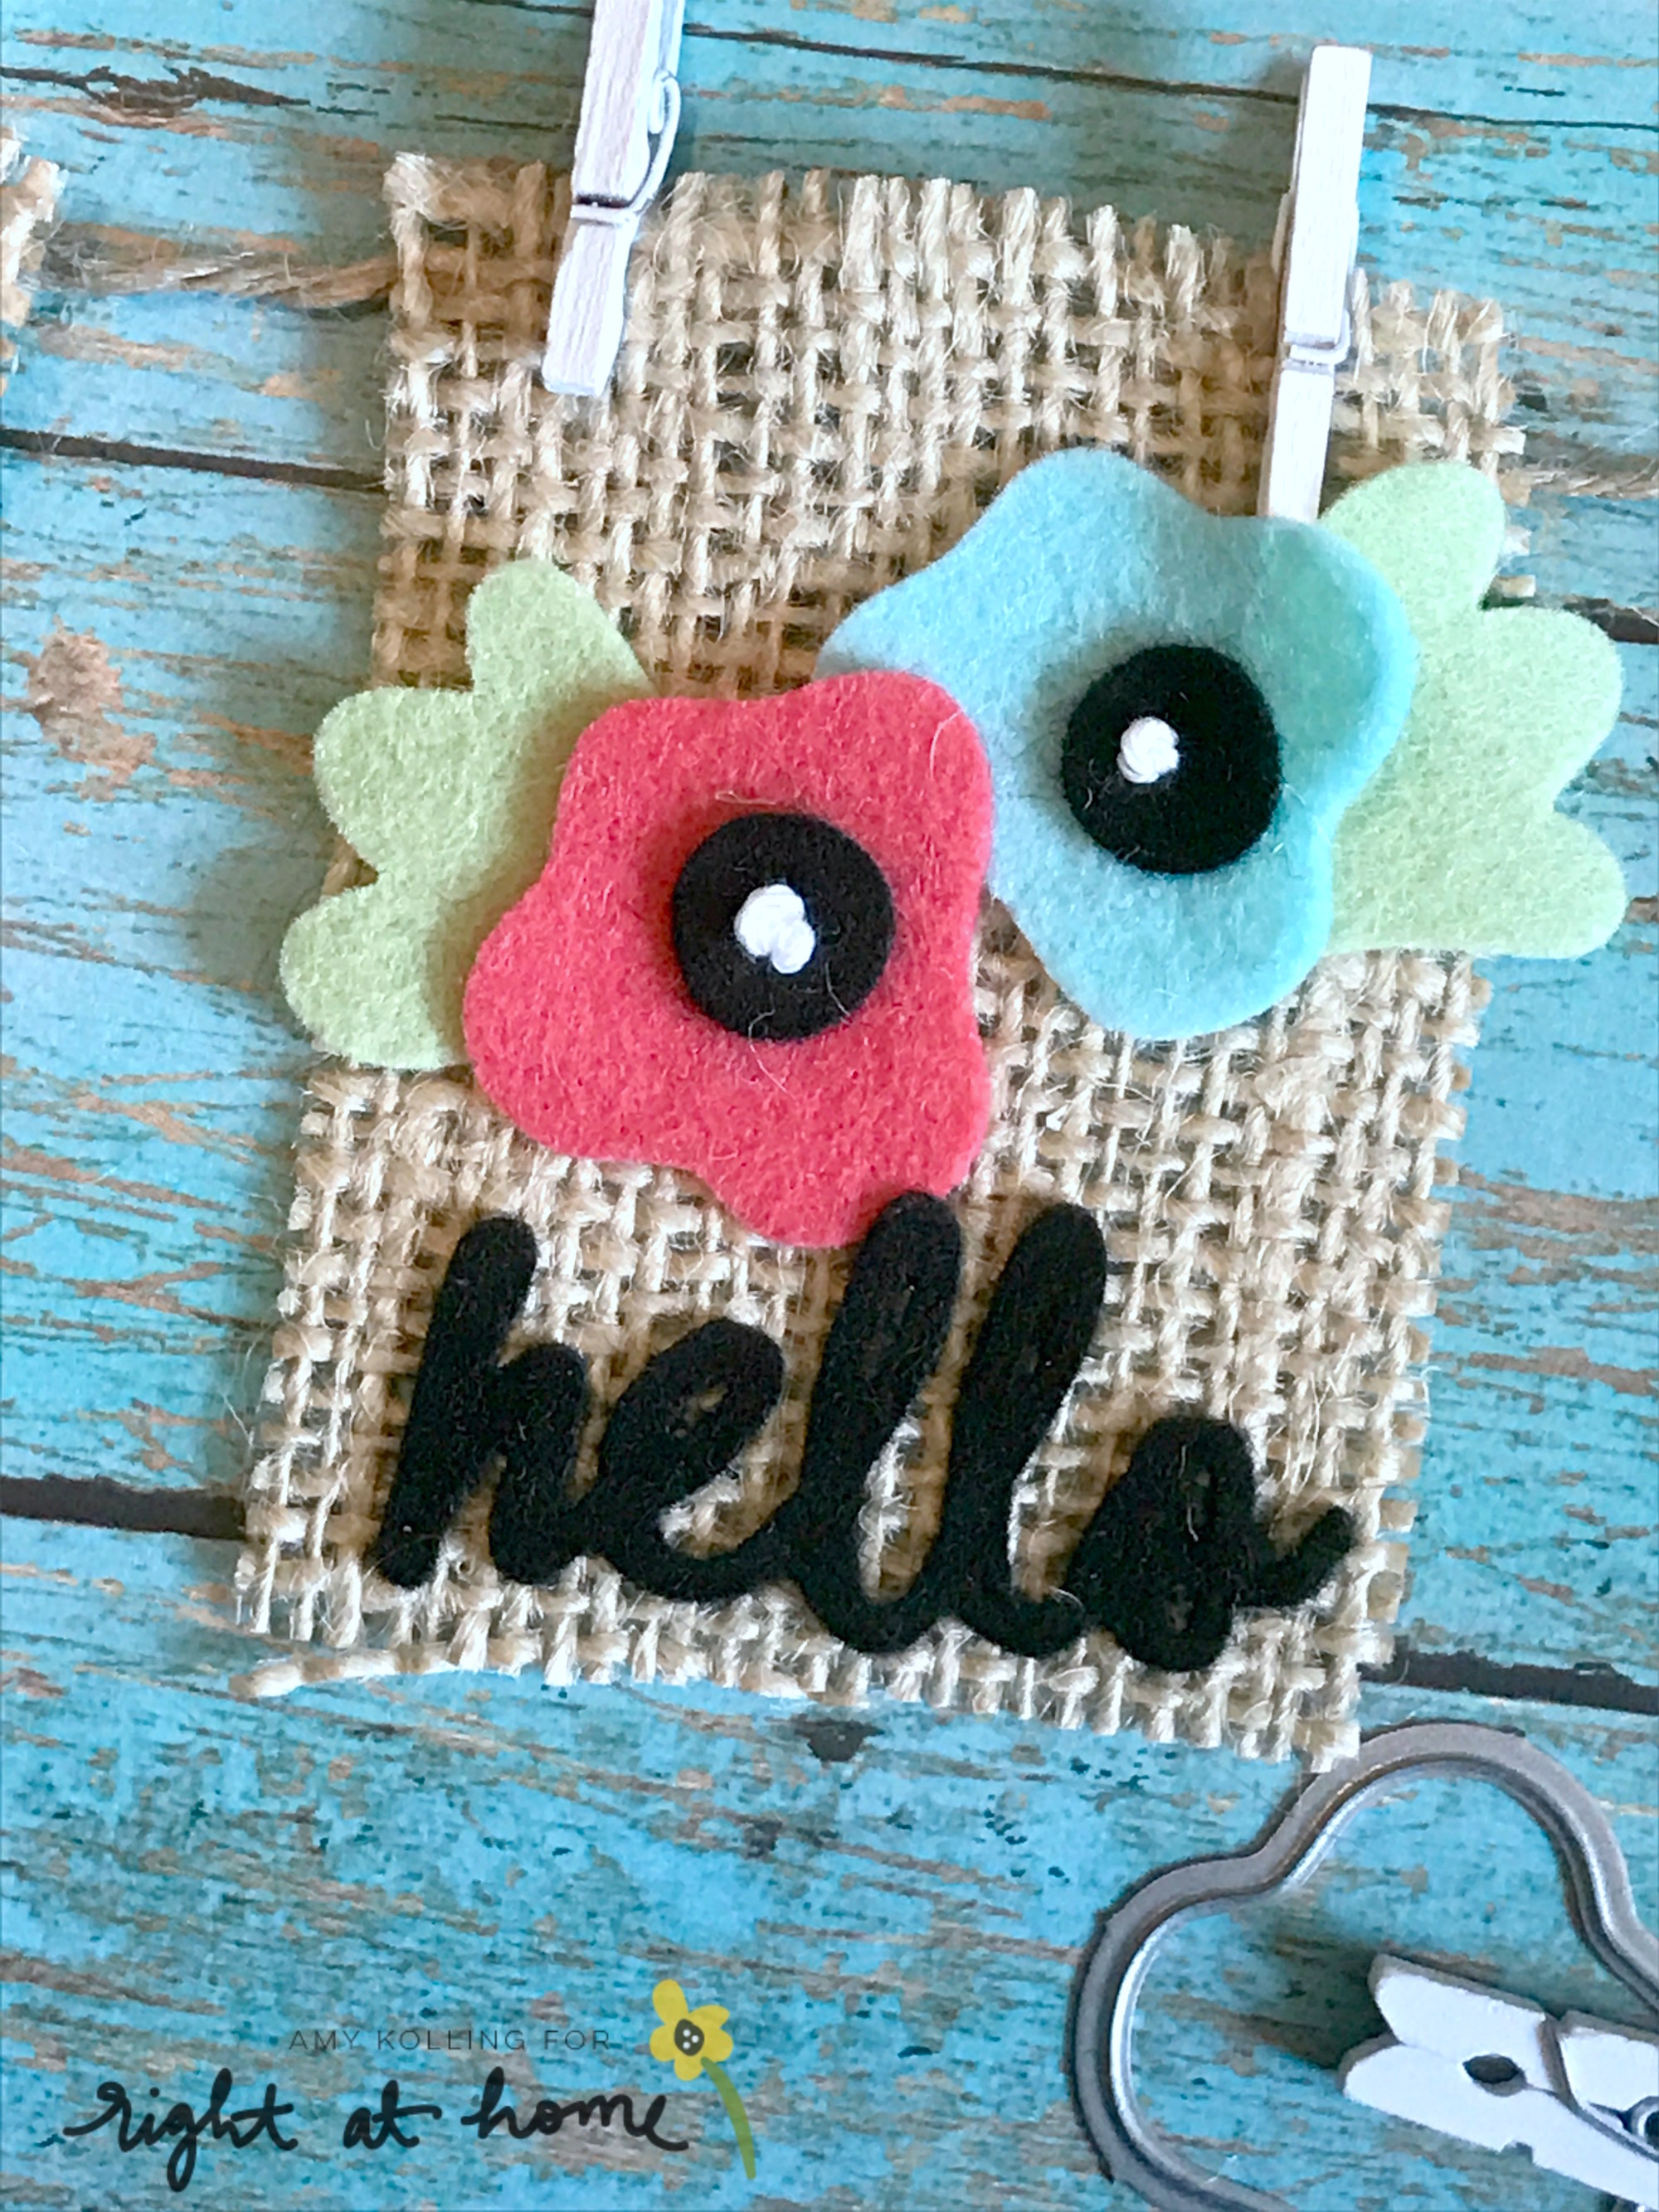 DIY Hello Burlap Banner by Amy K. // Homemade with Love Day #3 - rightathomeshop.com/blog